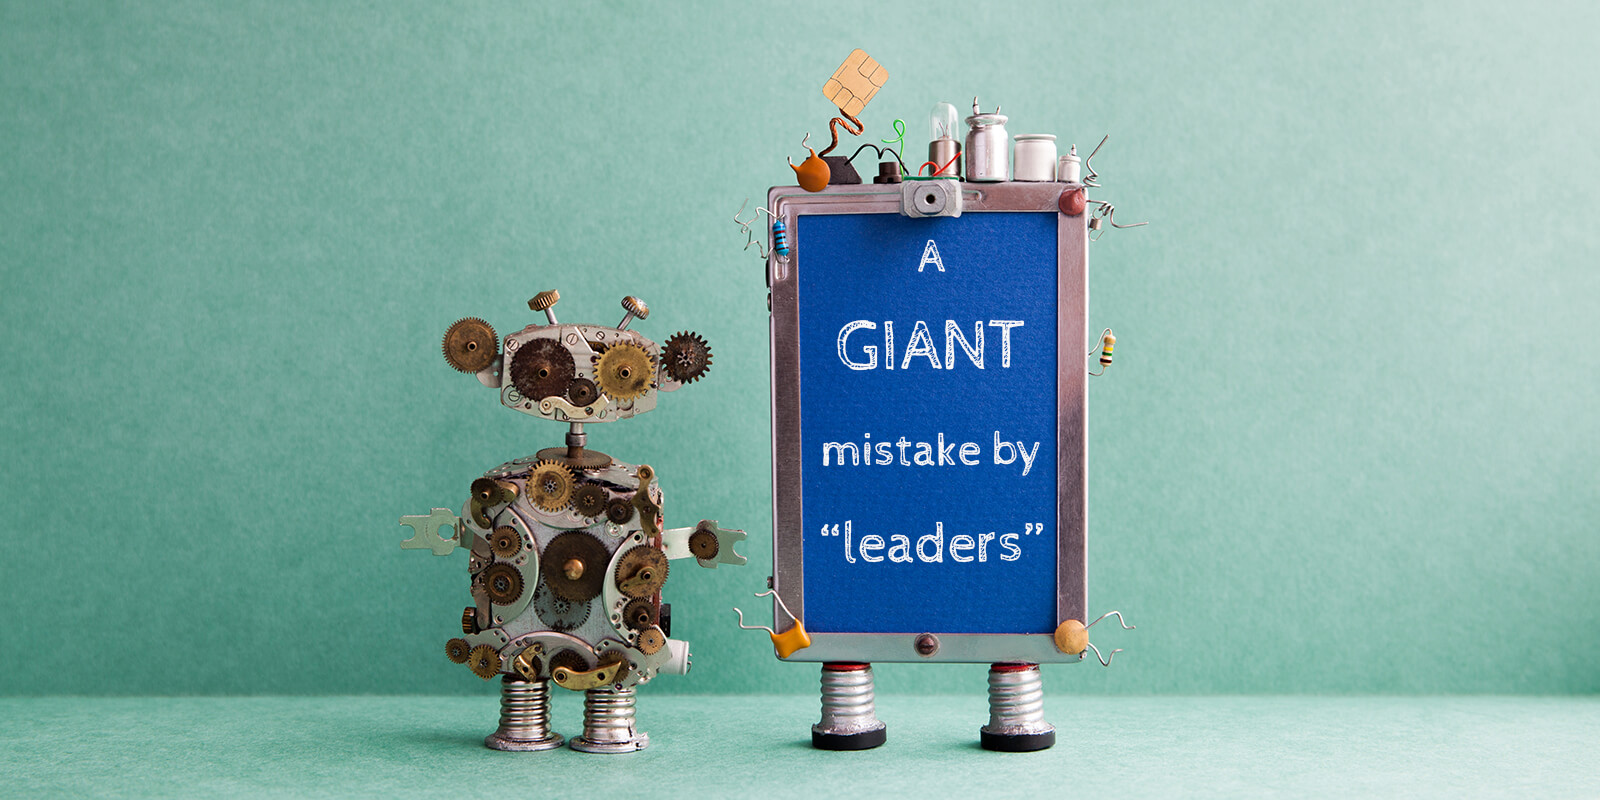 """@doctorregtech comments: A giant mistake by """"leaders"""" to see regulations as the largest obstacle: a reflection from reading the PWC global executive survey."""